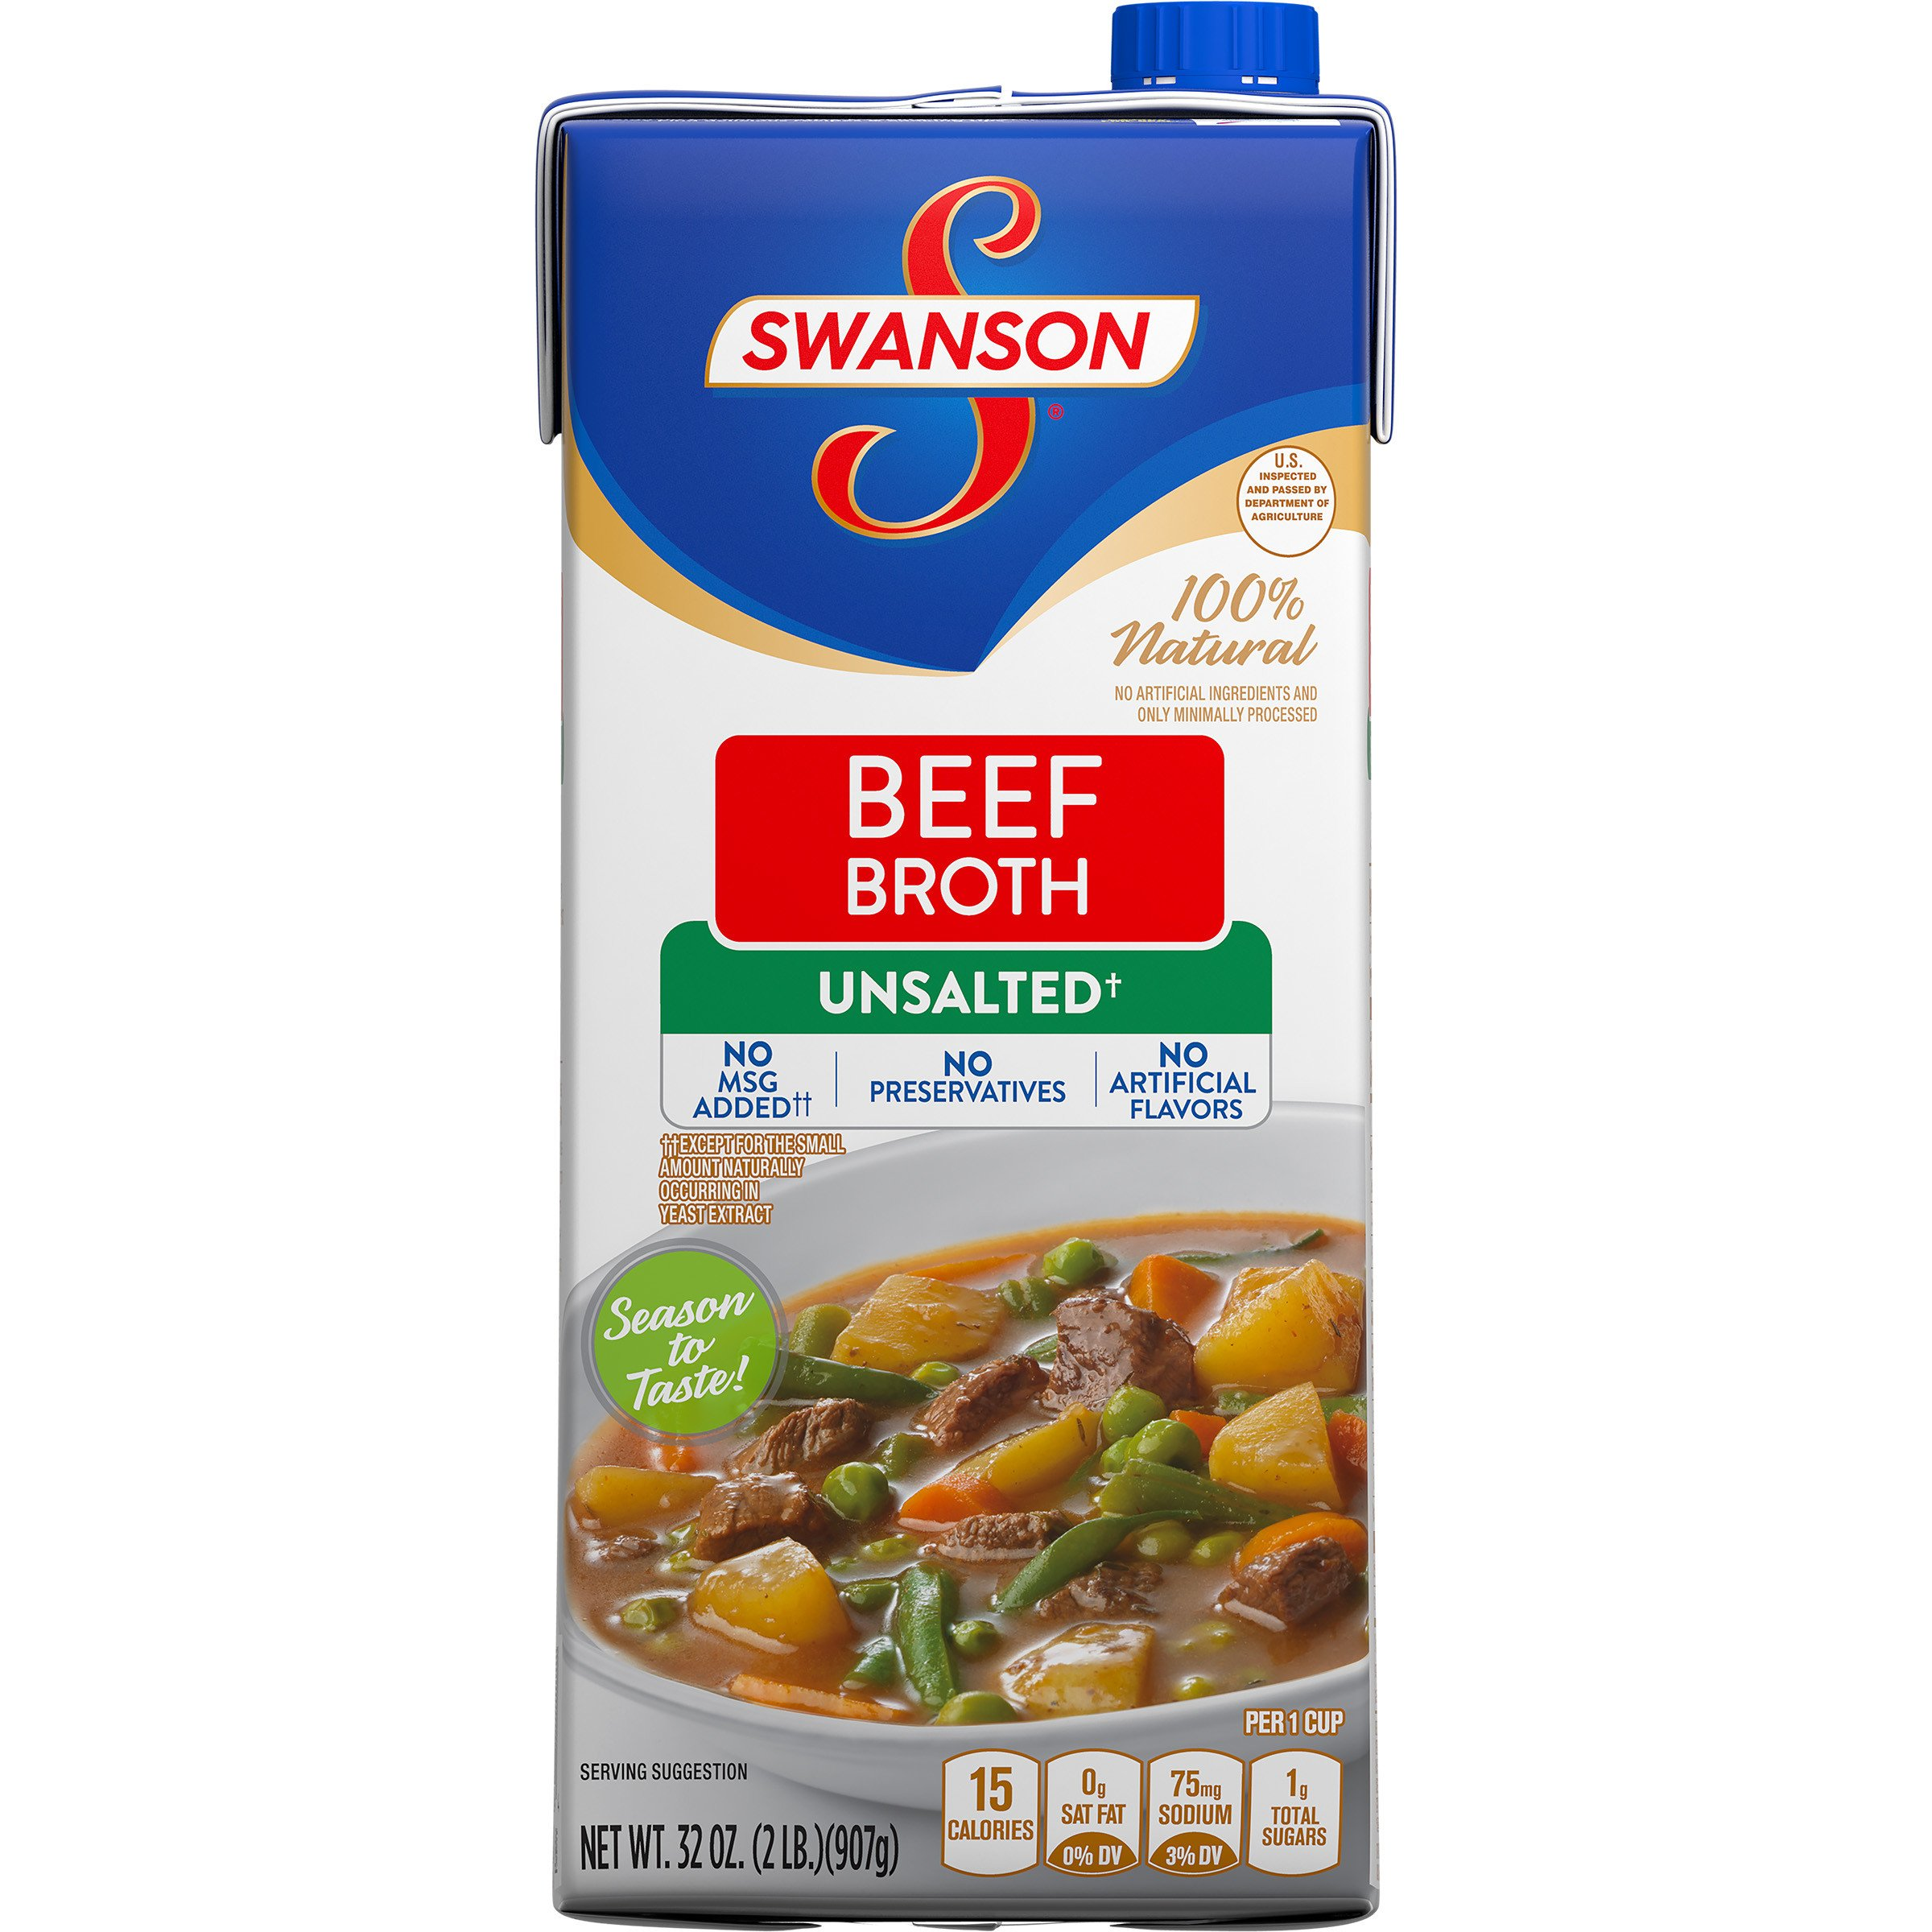 Swanson 100% Natural Unsalted Beef Broth, 32 oz.